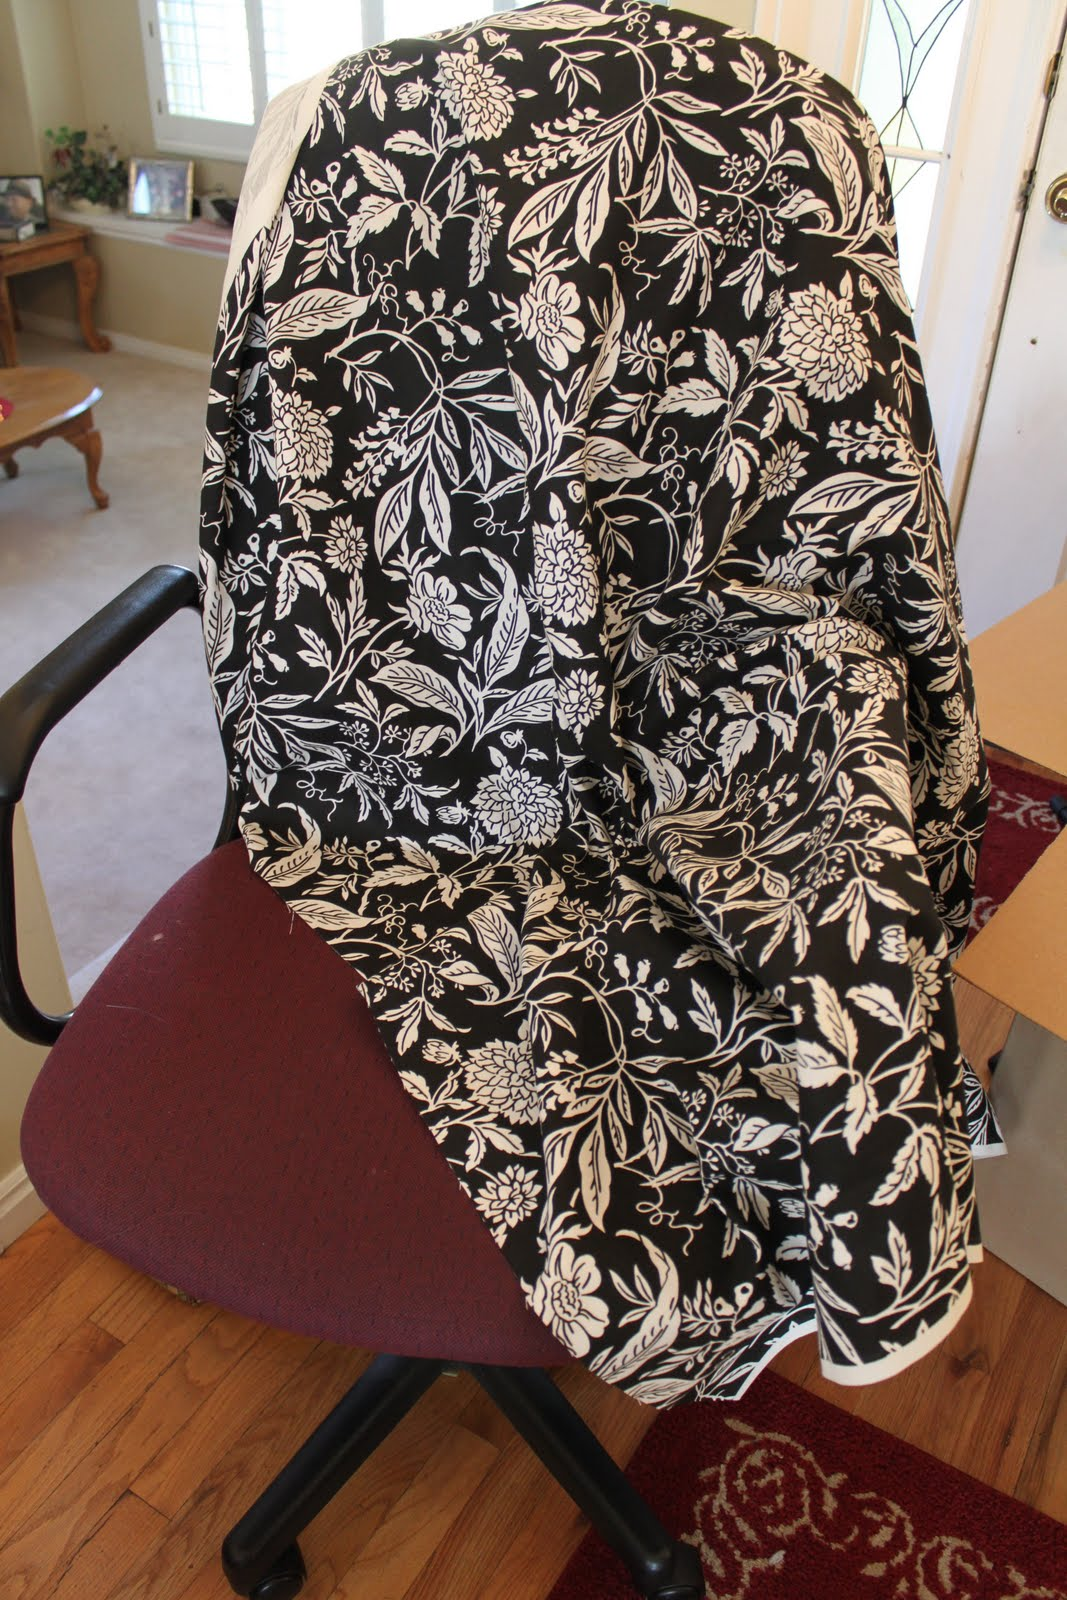 office chair covers to buy fishing cart holder do it yourself divas diy reupholster that ugly is heavy duty fabric specifically meant for home decor i bought three yards cover all my bases and ended up with extra